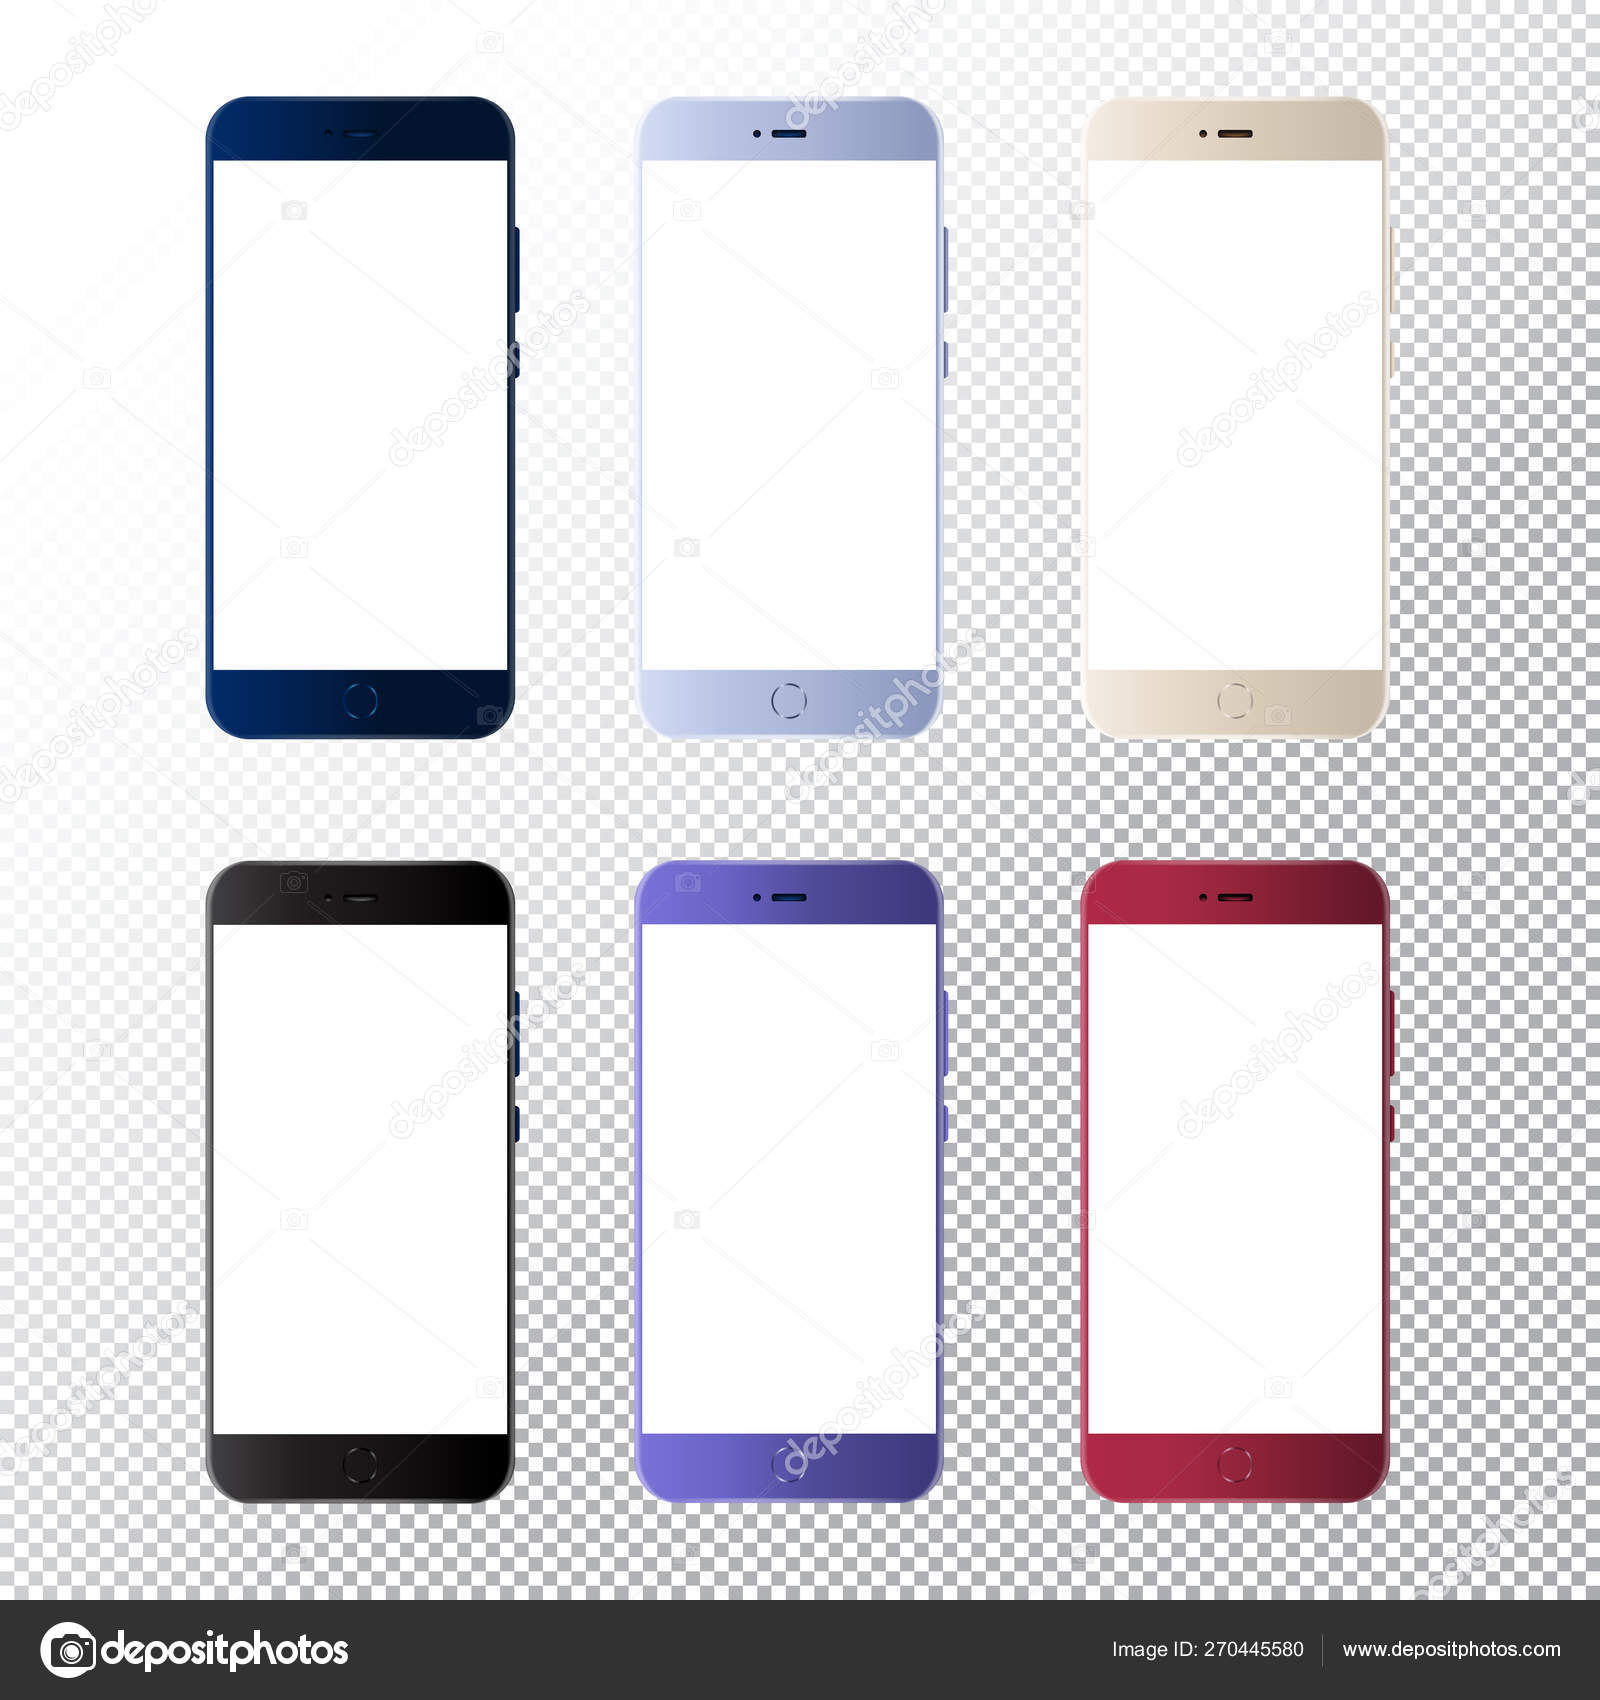 Smartphone Mock Up On Transparent Background Vector Mobile Phone With Empty Screens Mockup For Android App